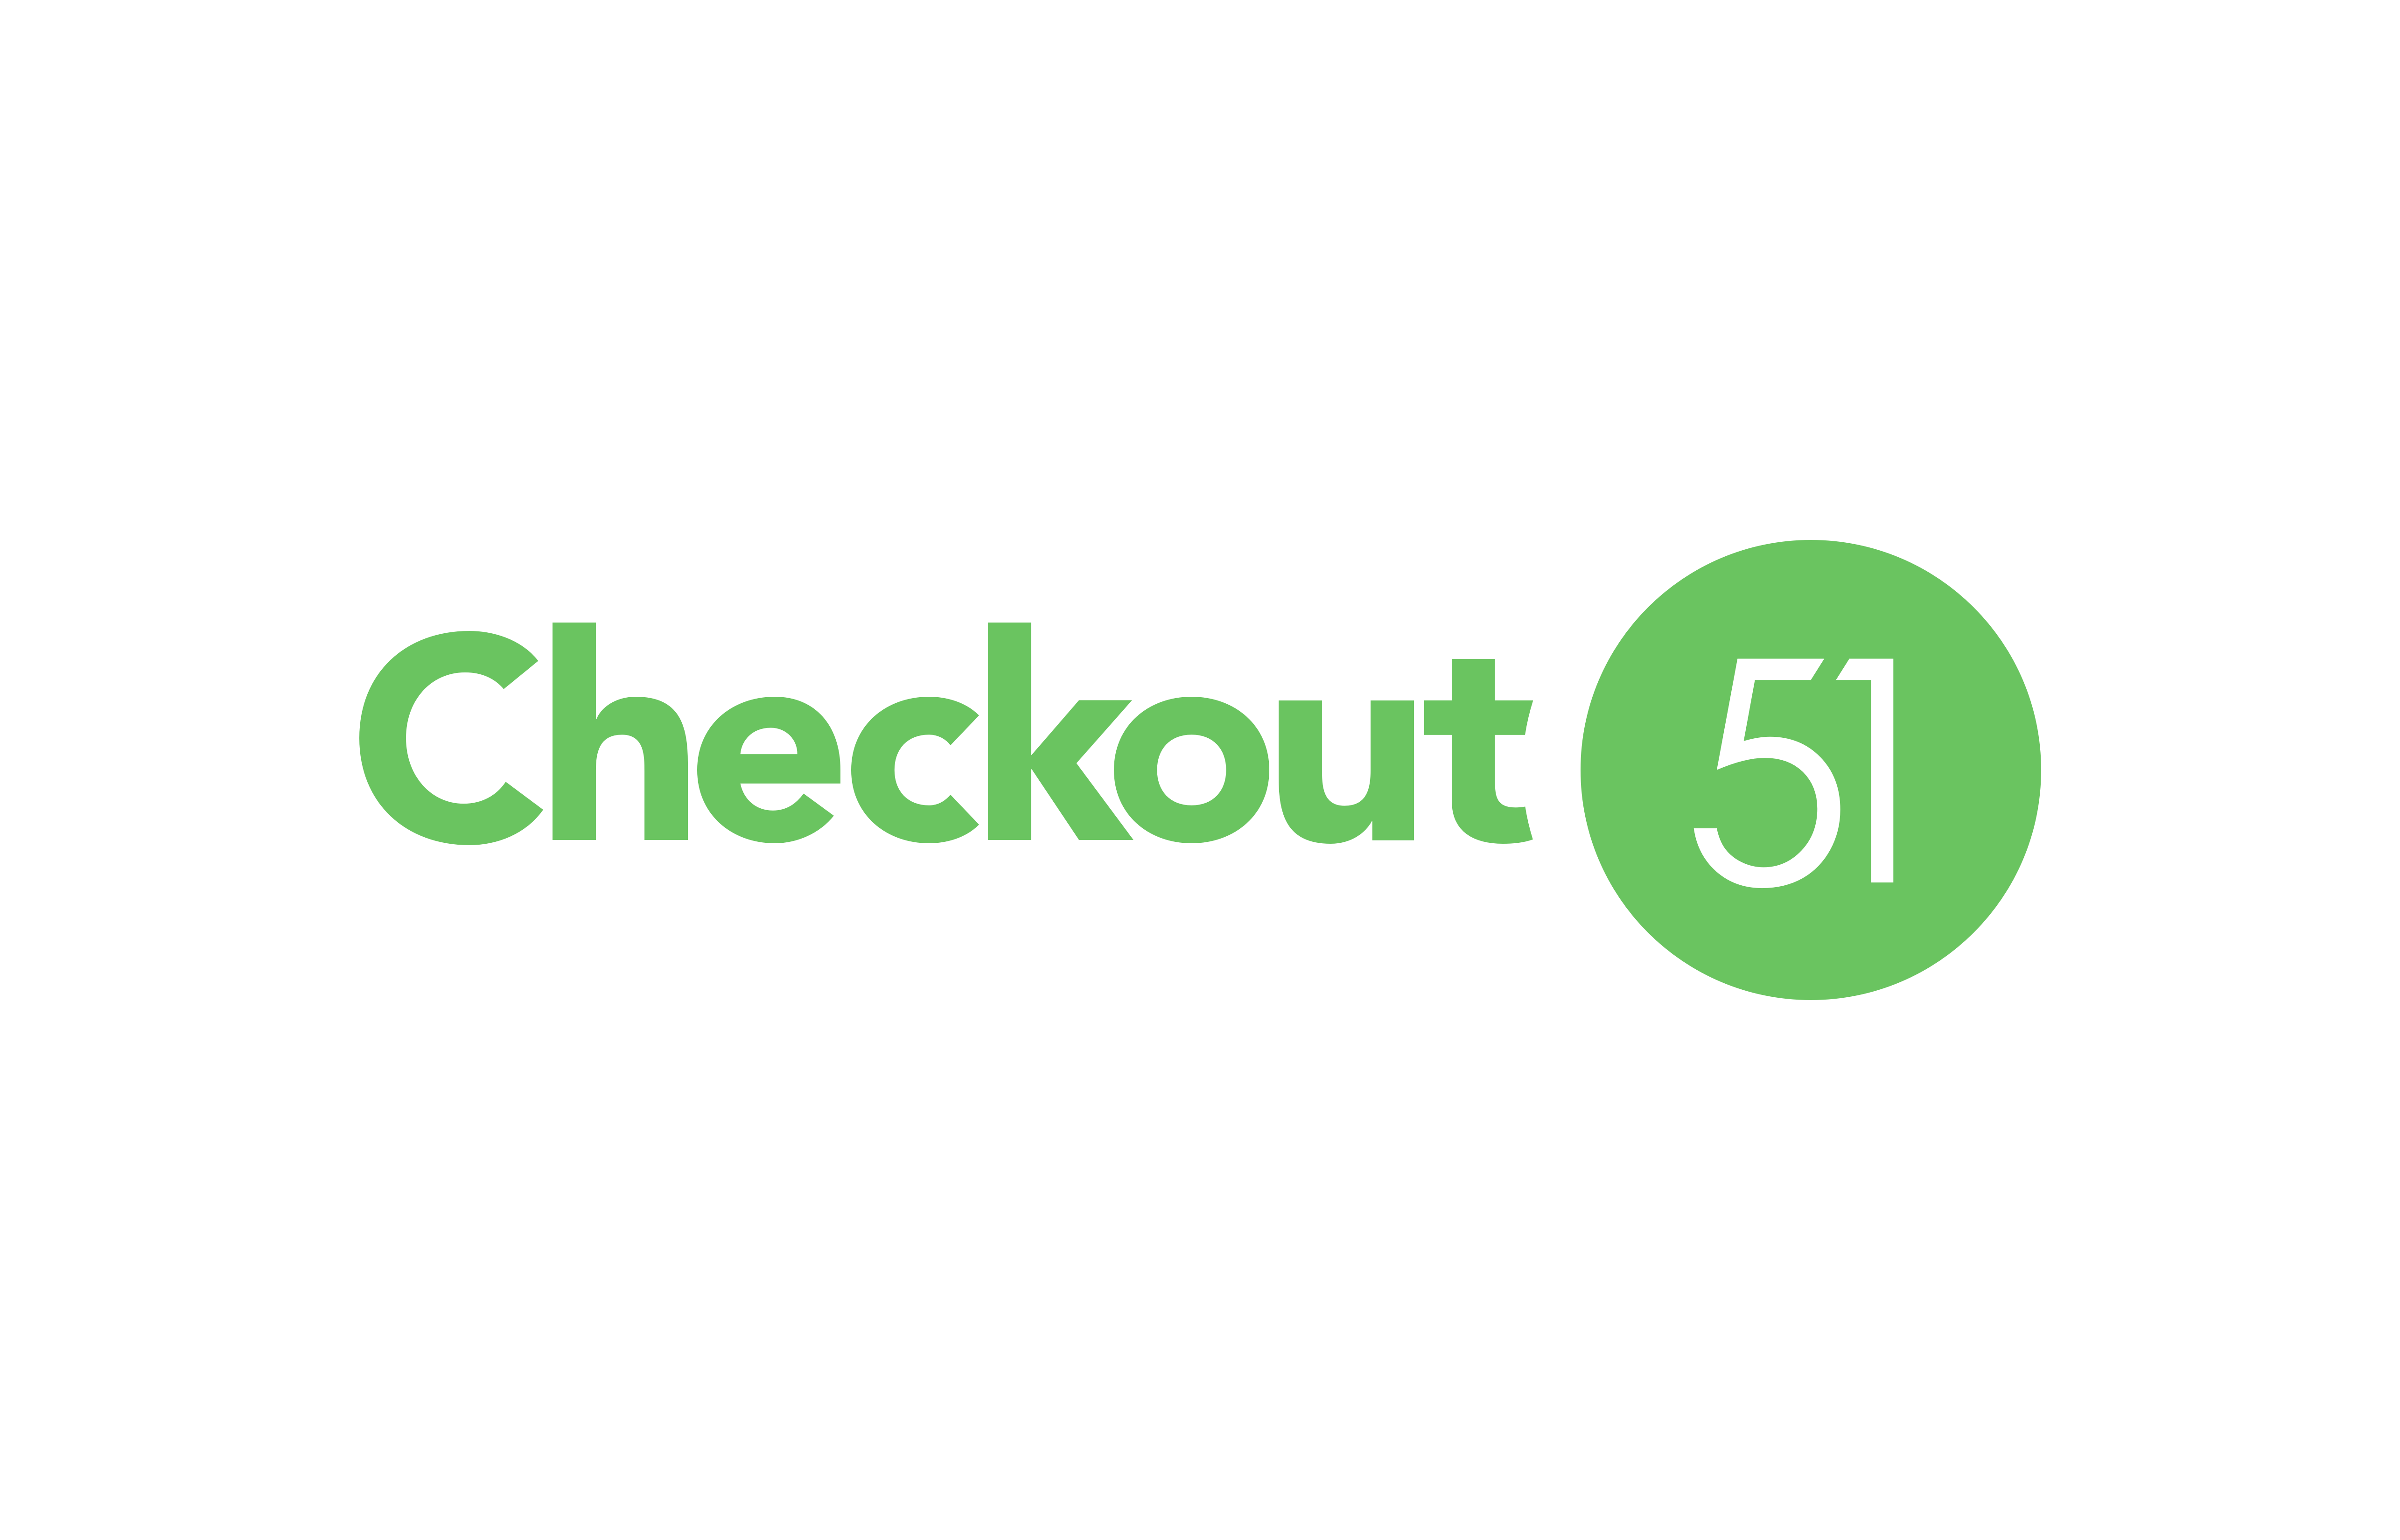 How does Checkout 51 work?